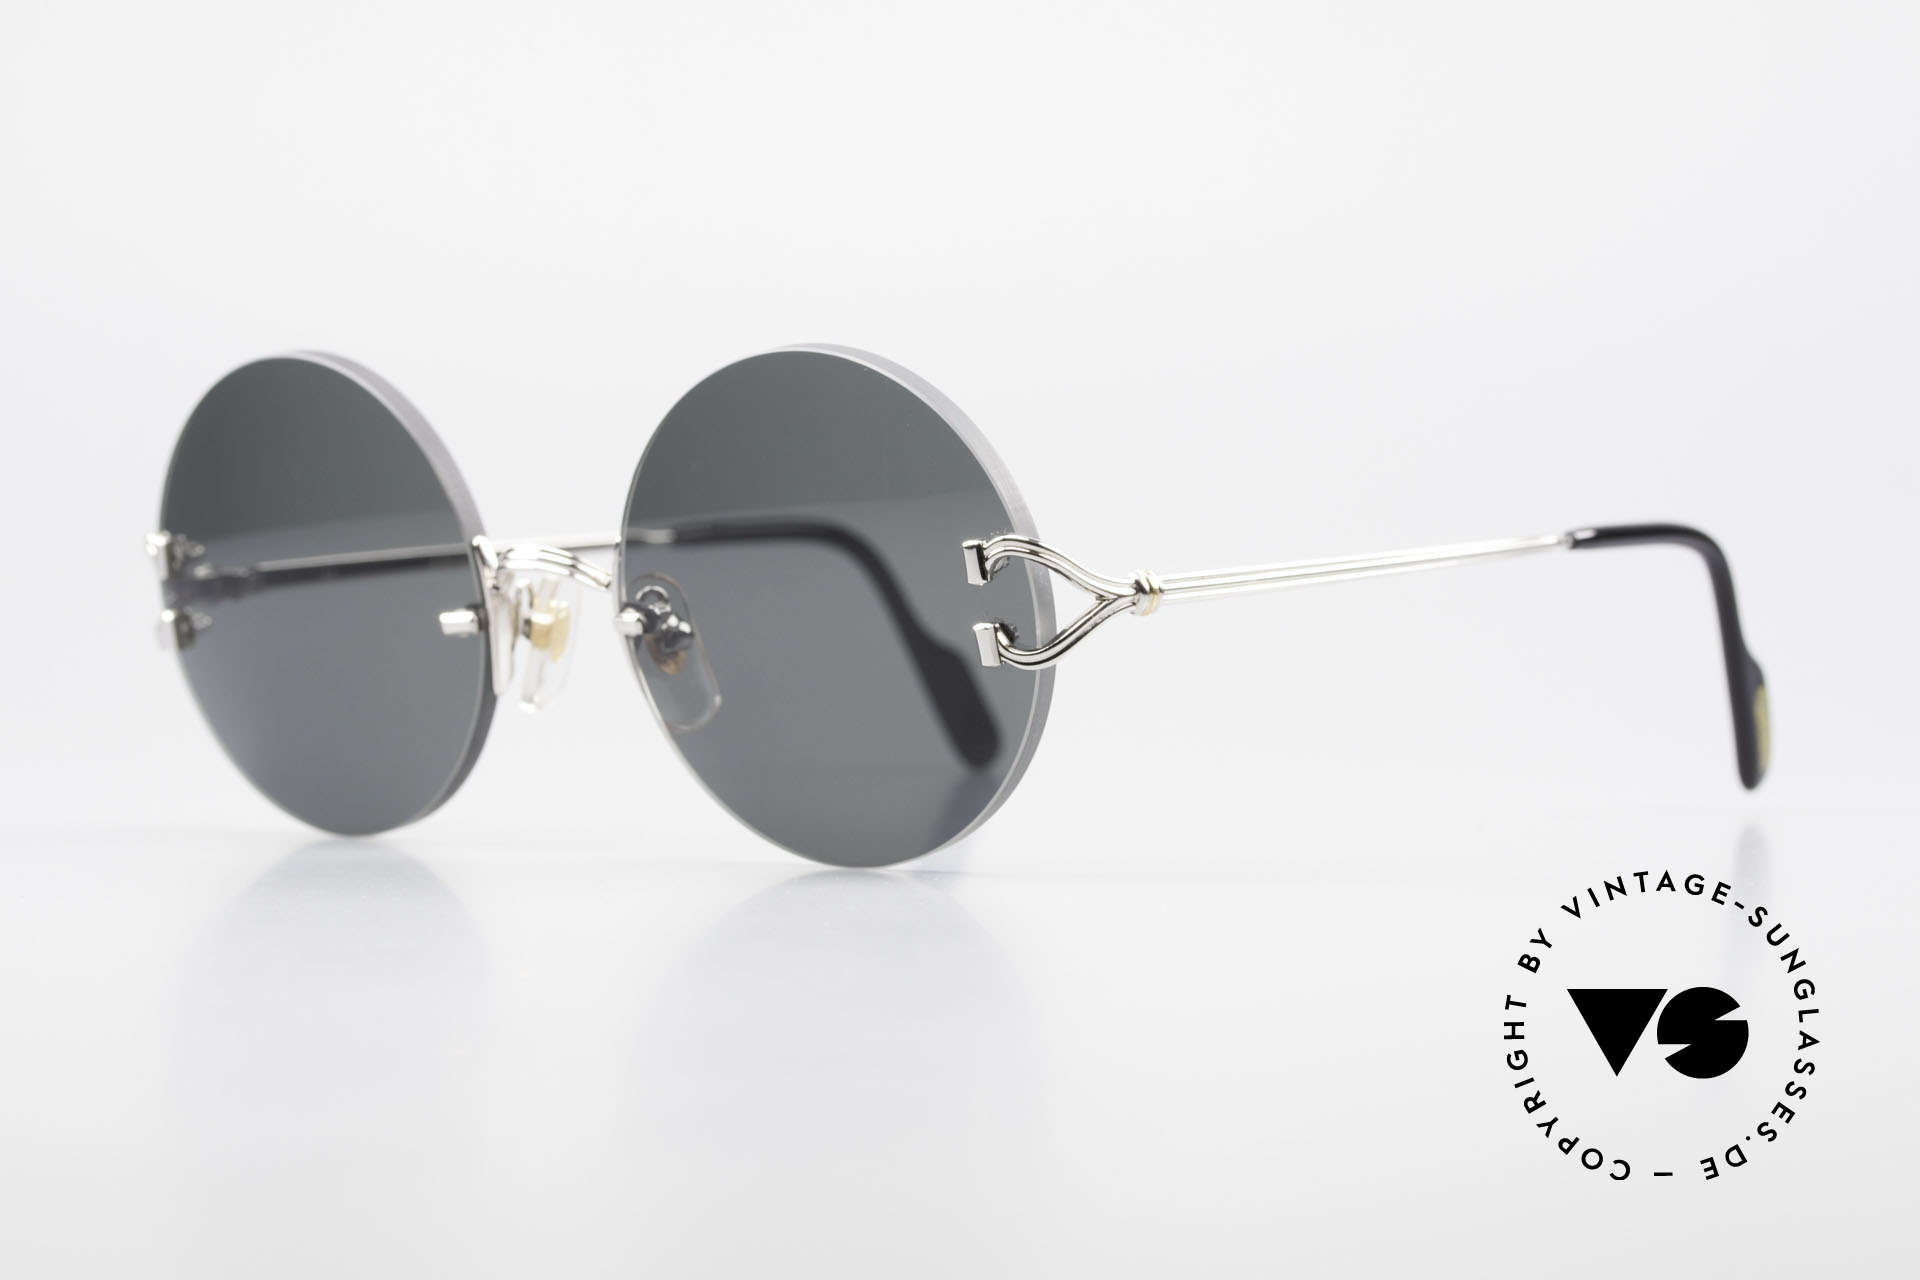 Cartier Madison Small Round Rimless Shades, 2nd hand model, but in mint condition + orig. box, Made for Men and Women